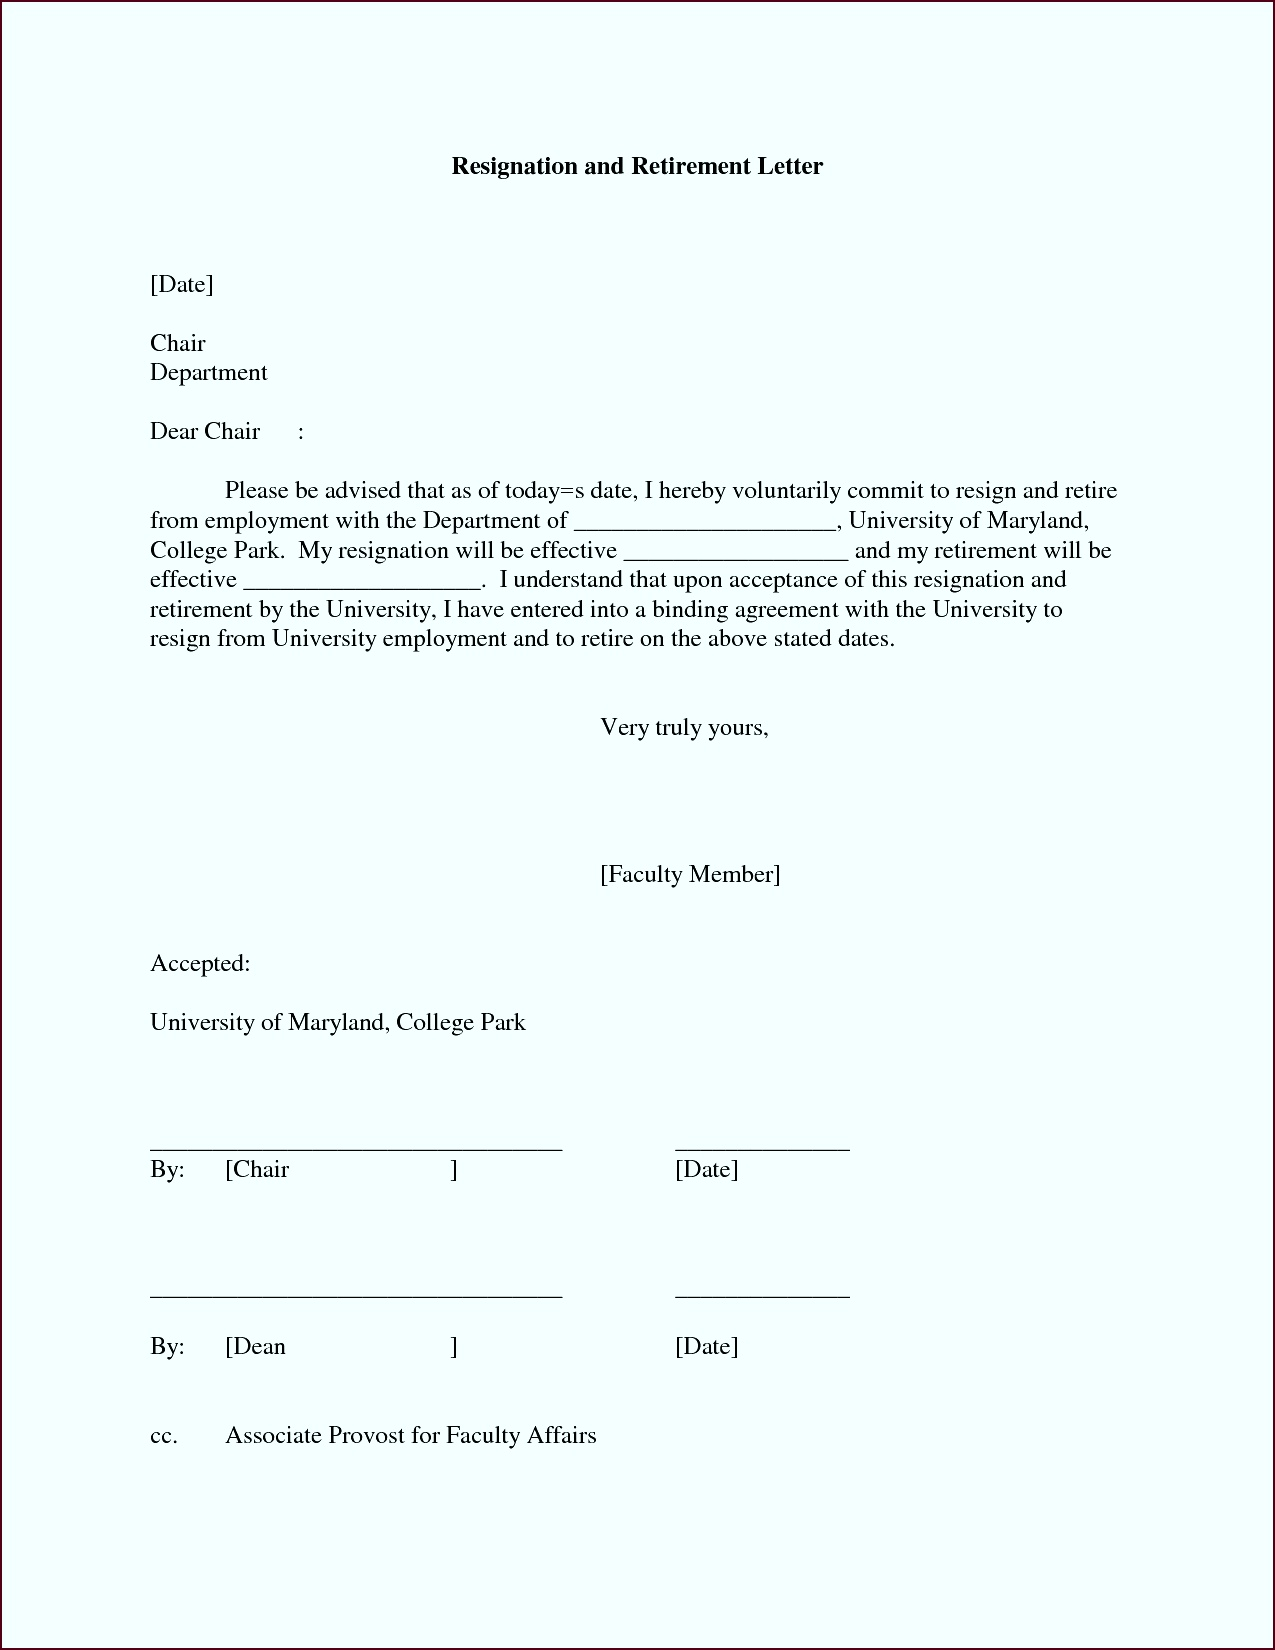 A resignation acceptance letter is the letter to an employee from an employer who have received and accordingly accepted the letter of resignation … oeoyi